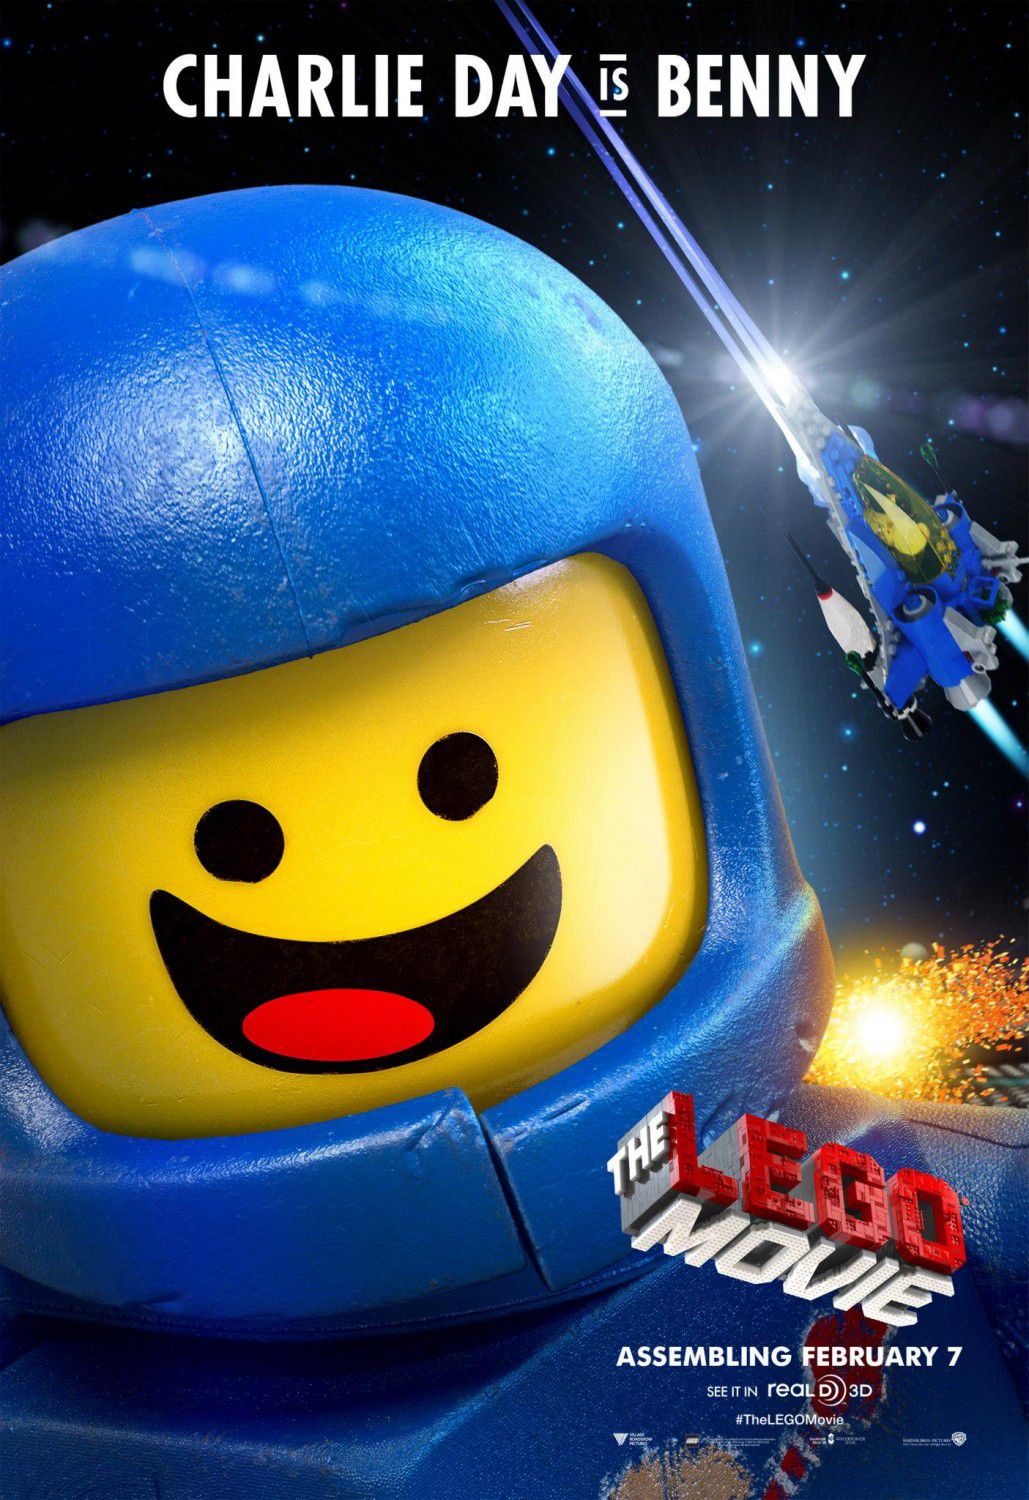 LEGO movie - Benny